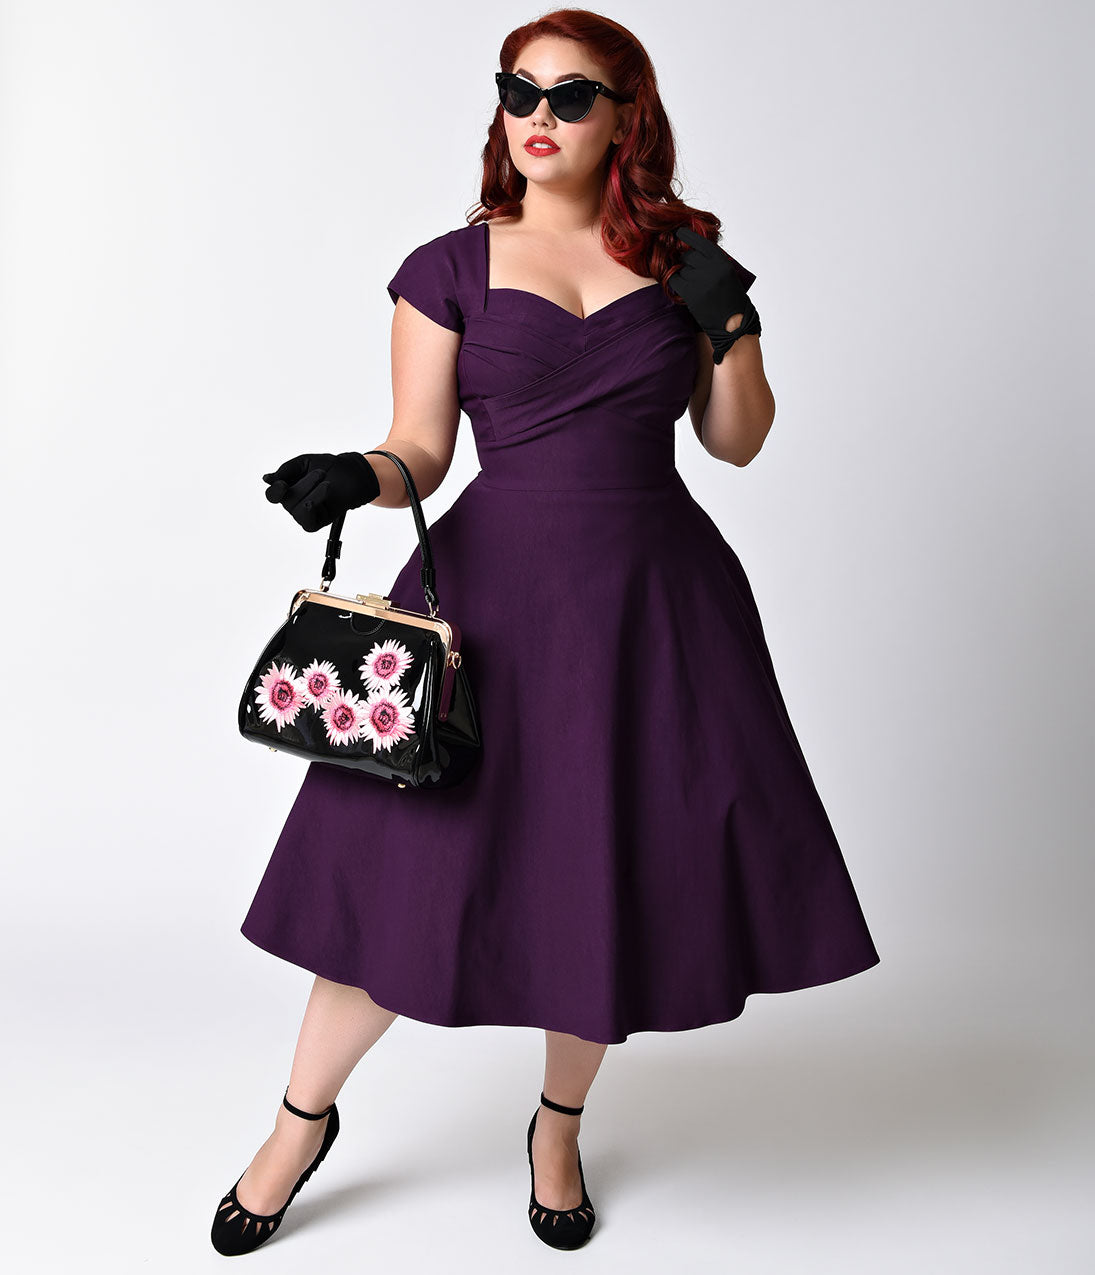 Help Me Find This Dress